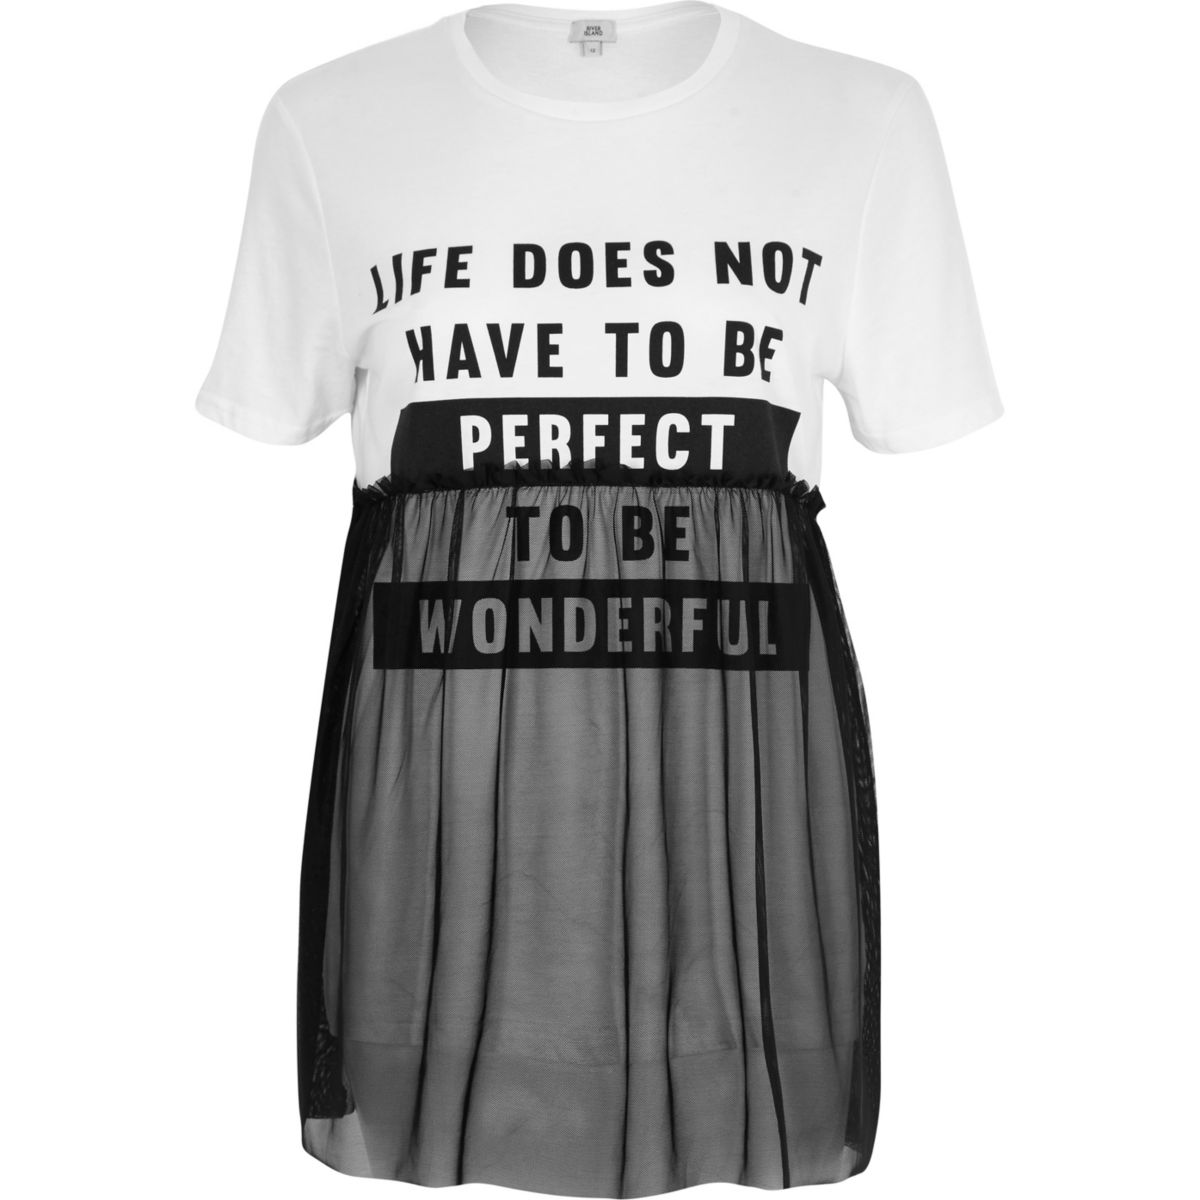 White 'life does not' mesh overlay T-shirt